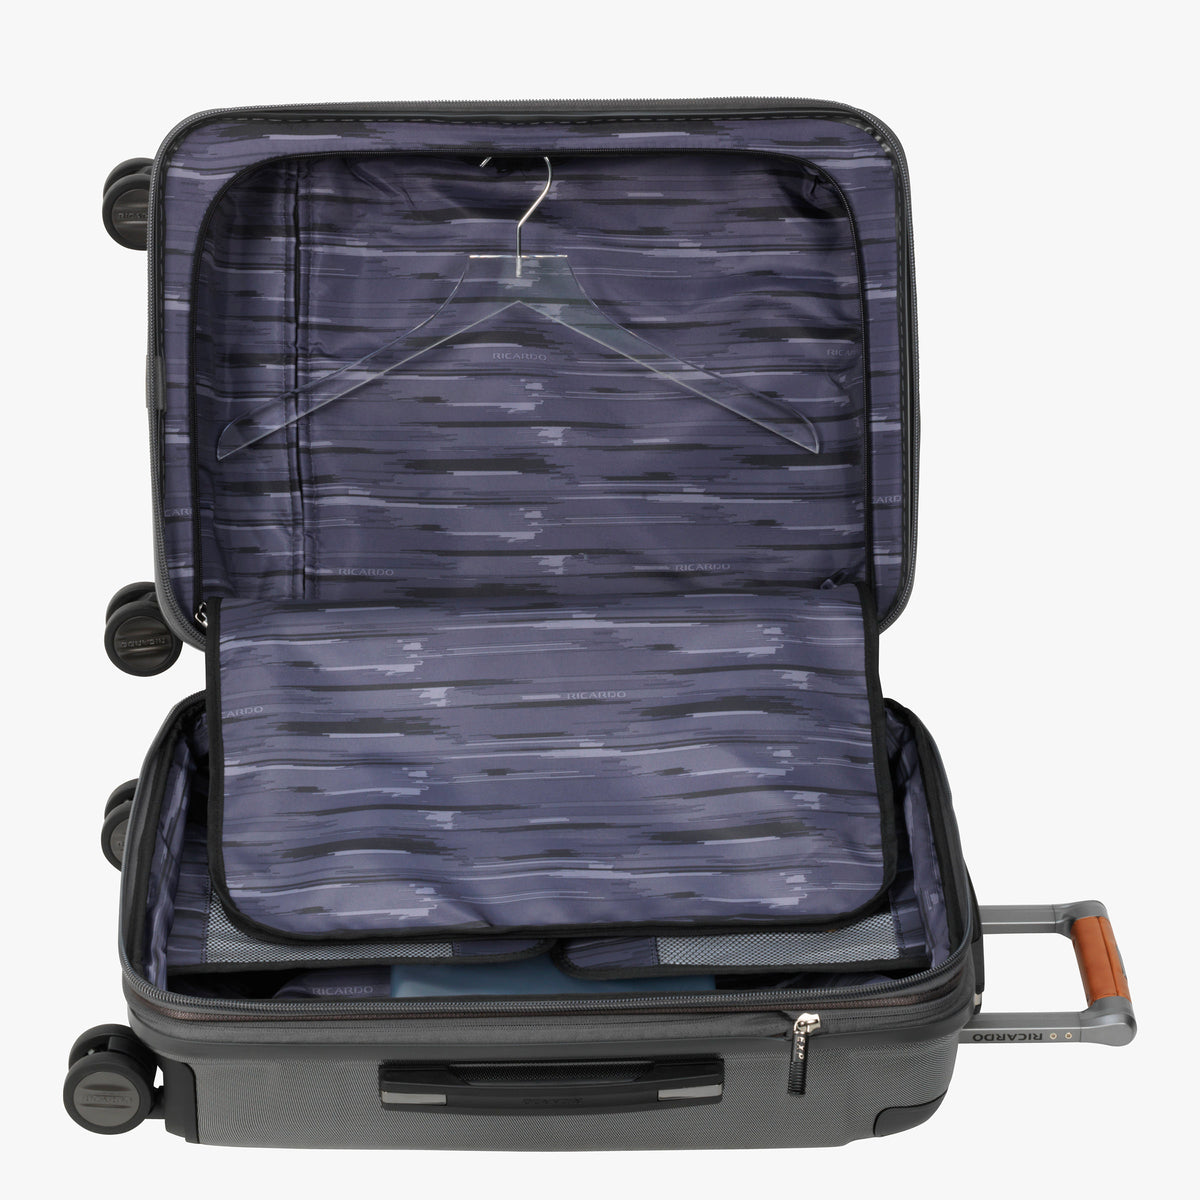 ... Carry-On Ocean Drive 21-inch Carry-On Suitcase in Silver Alternate Open  ... 1c11196b73385